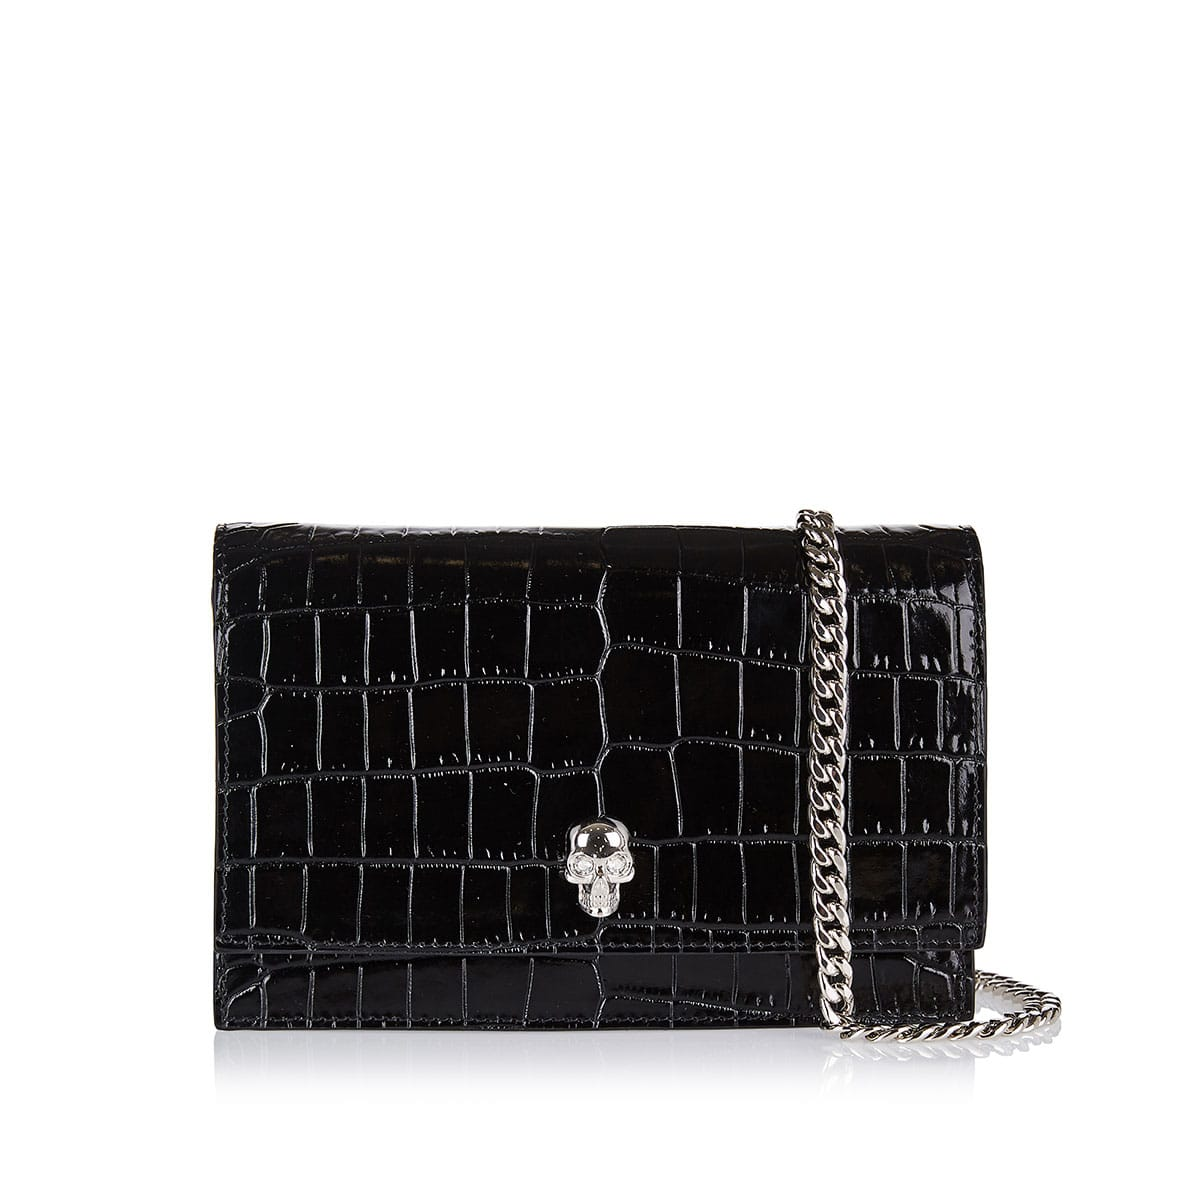 Skull-embellished croc-effect chain bag